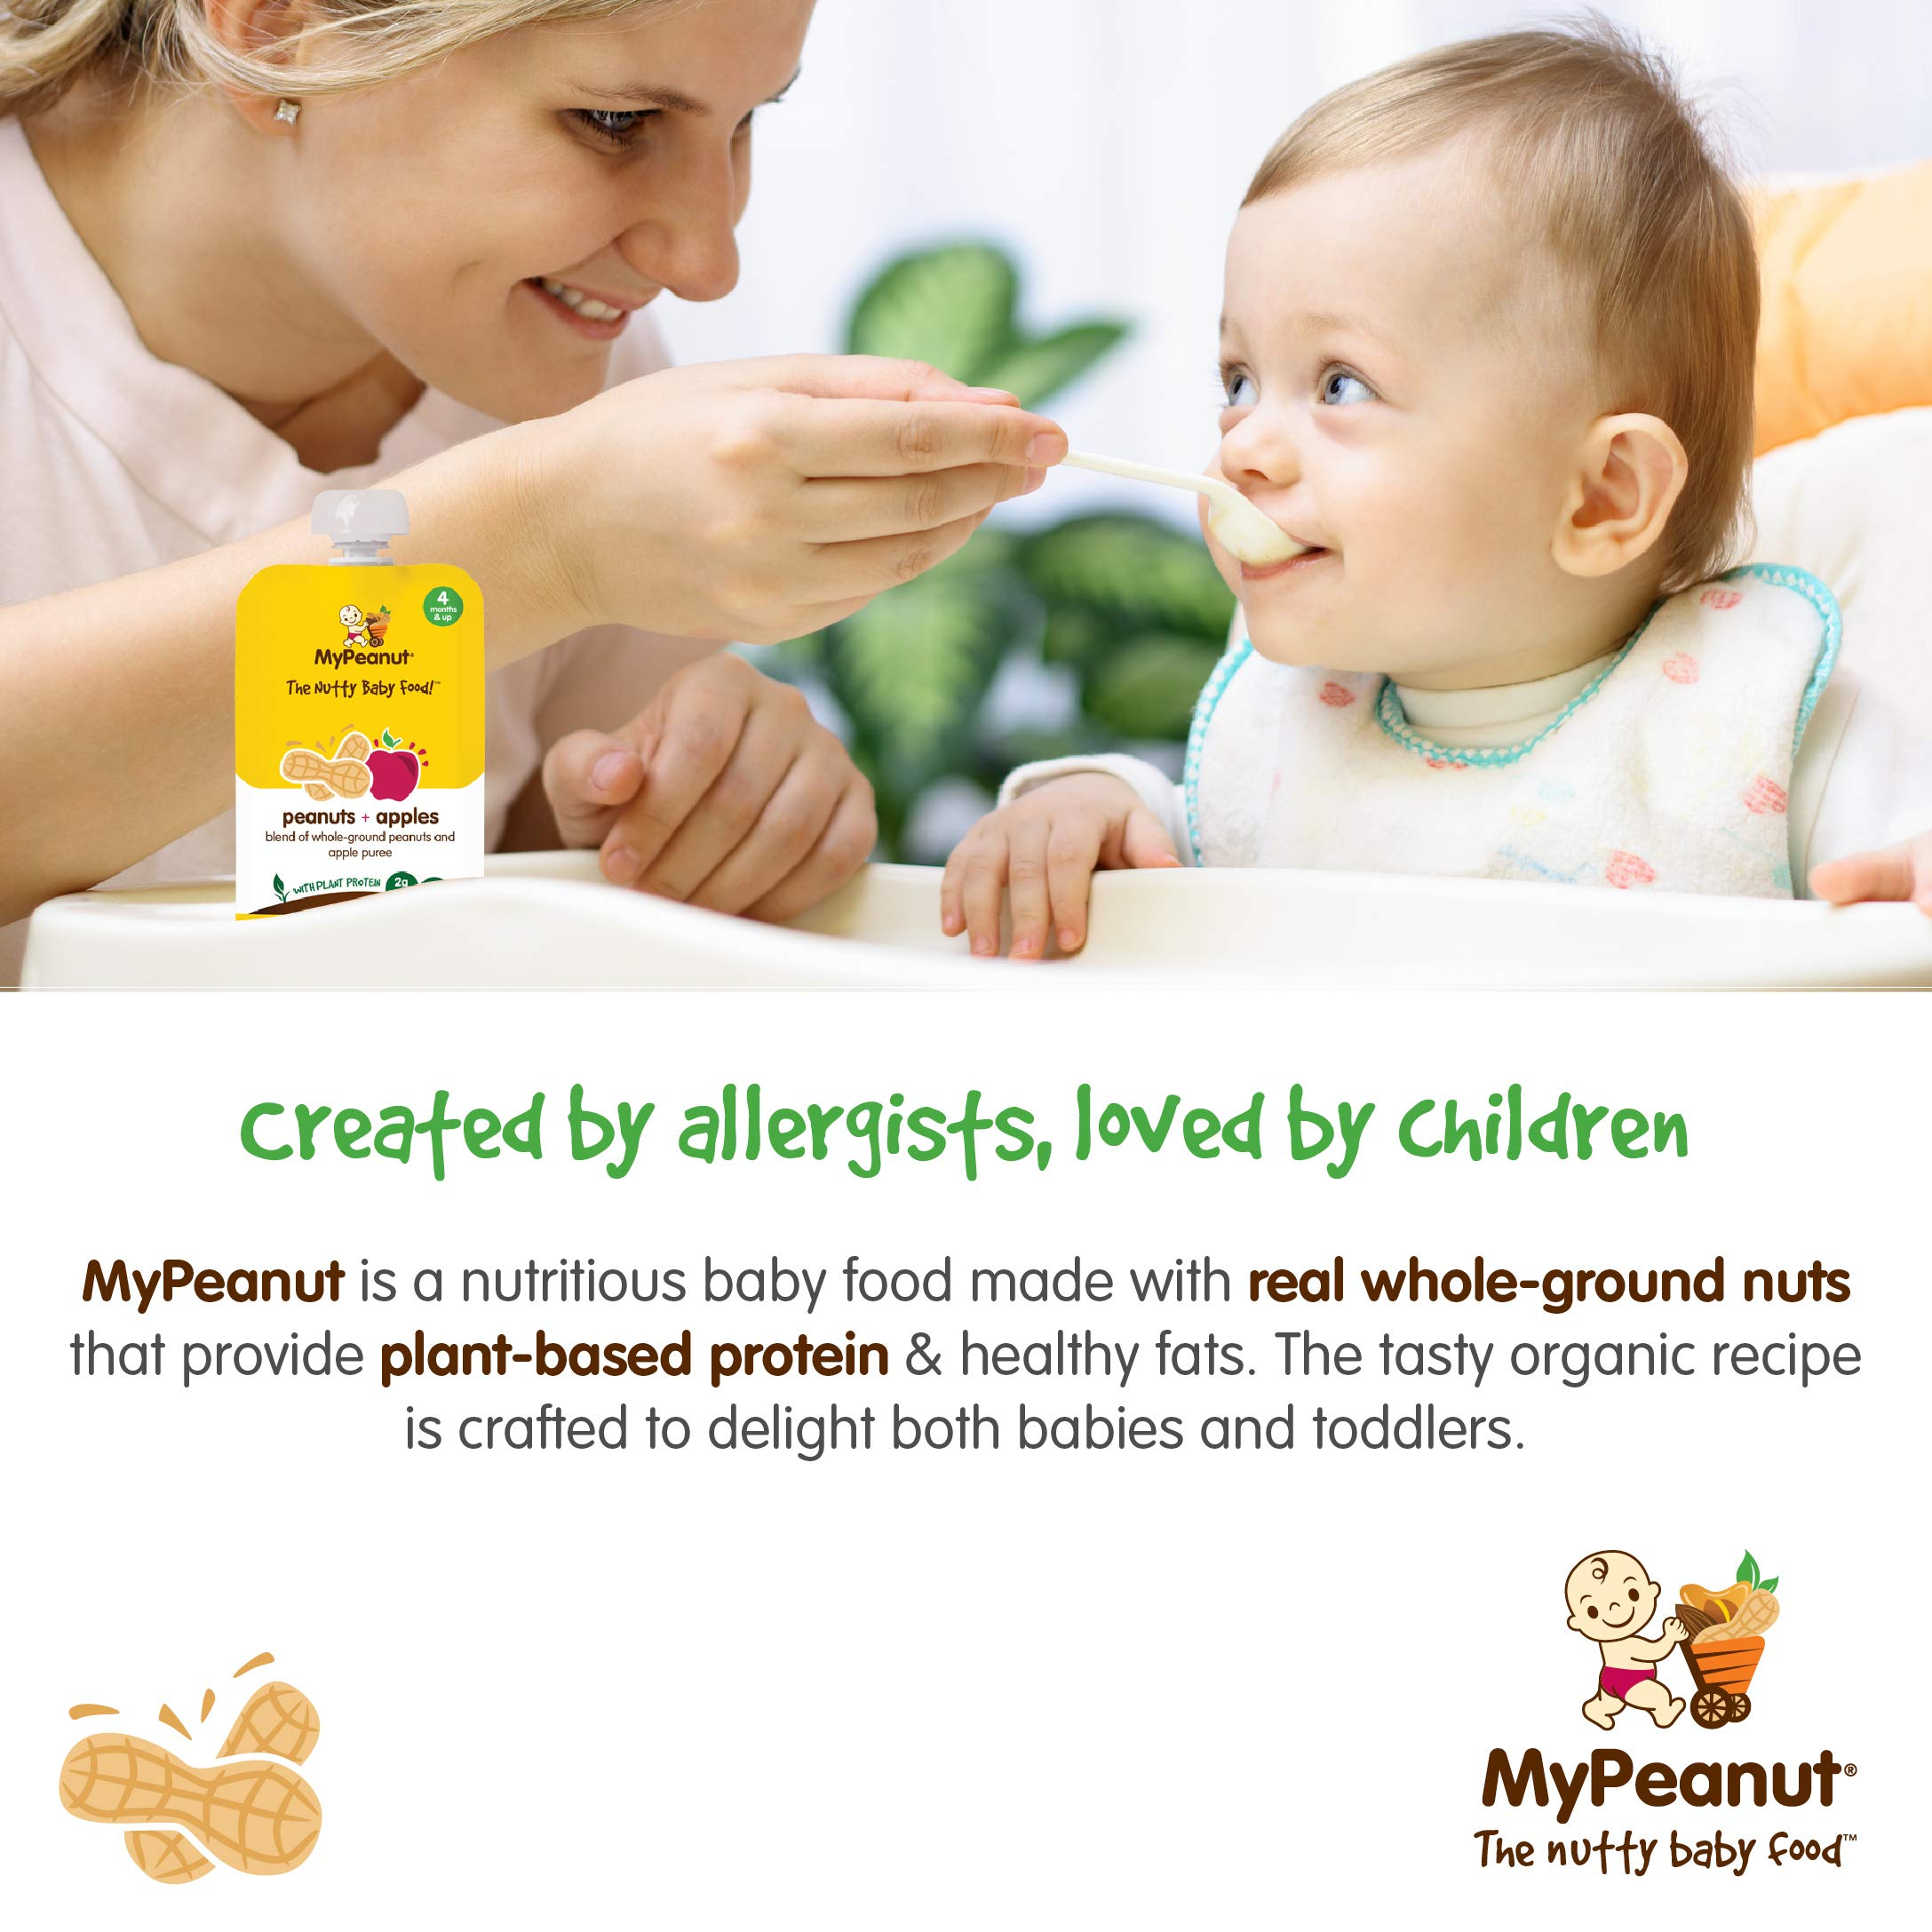 MyPeanut Baby Food, Organic Stage 1 Peanut and Apple Puree for Introducing and Feeding Babies and Toddlers Nuts, Non-GMO, BPA Free 3.5 oz Pouch, 18 Pack by MyPeanut (Image #2)